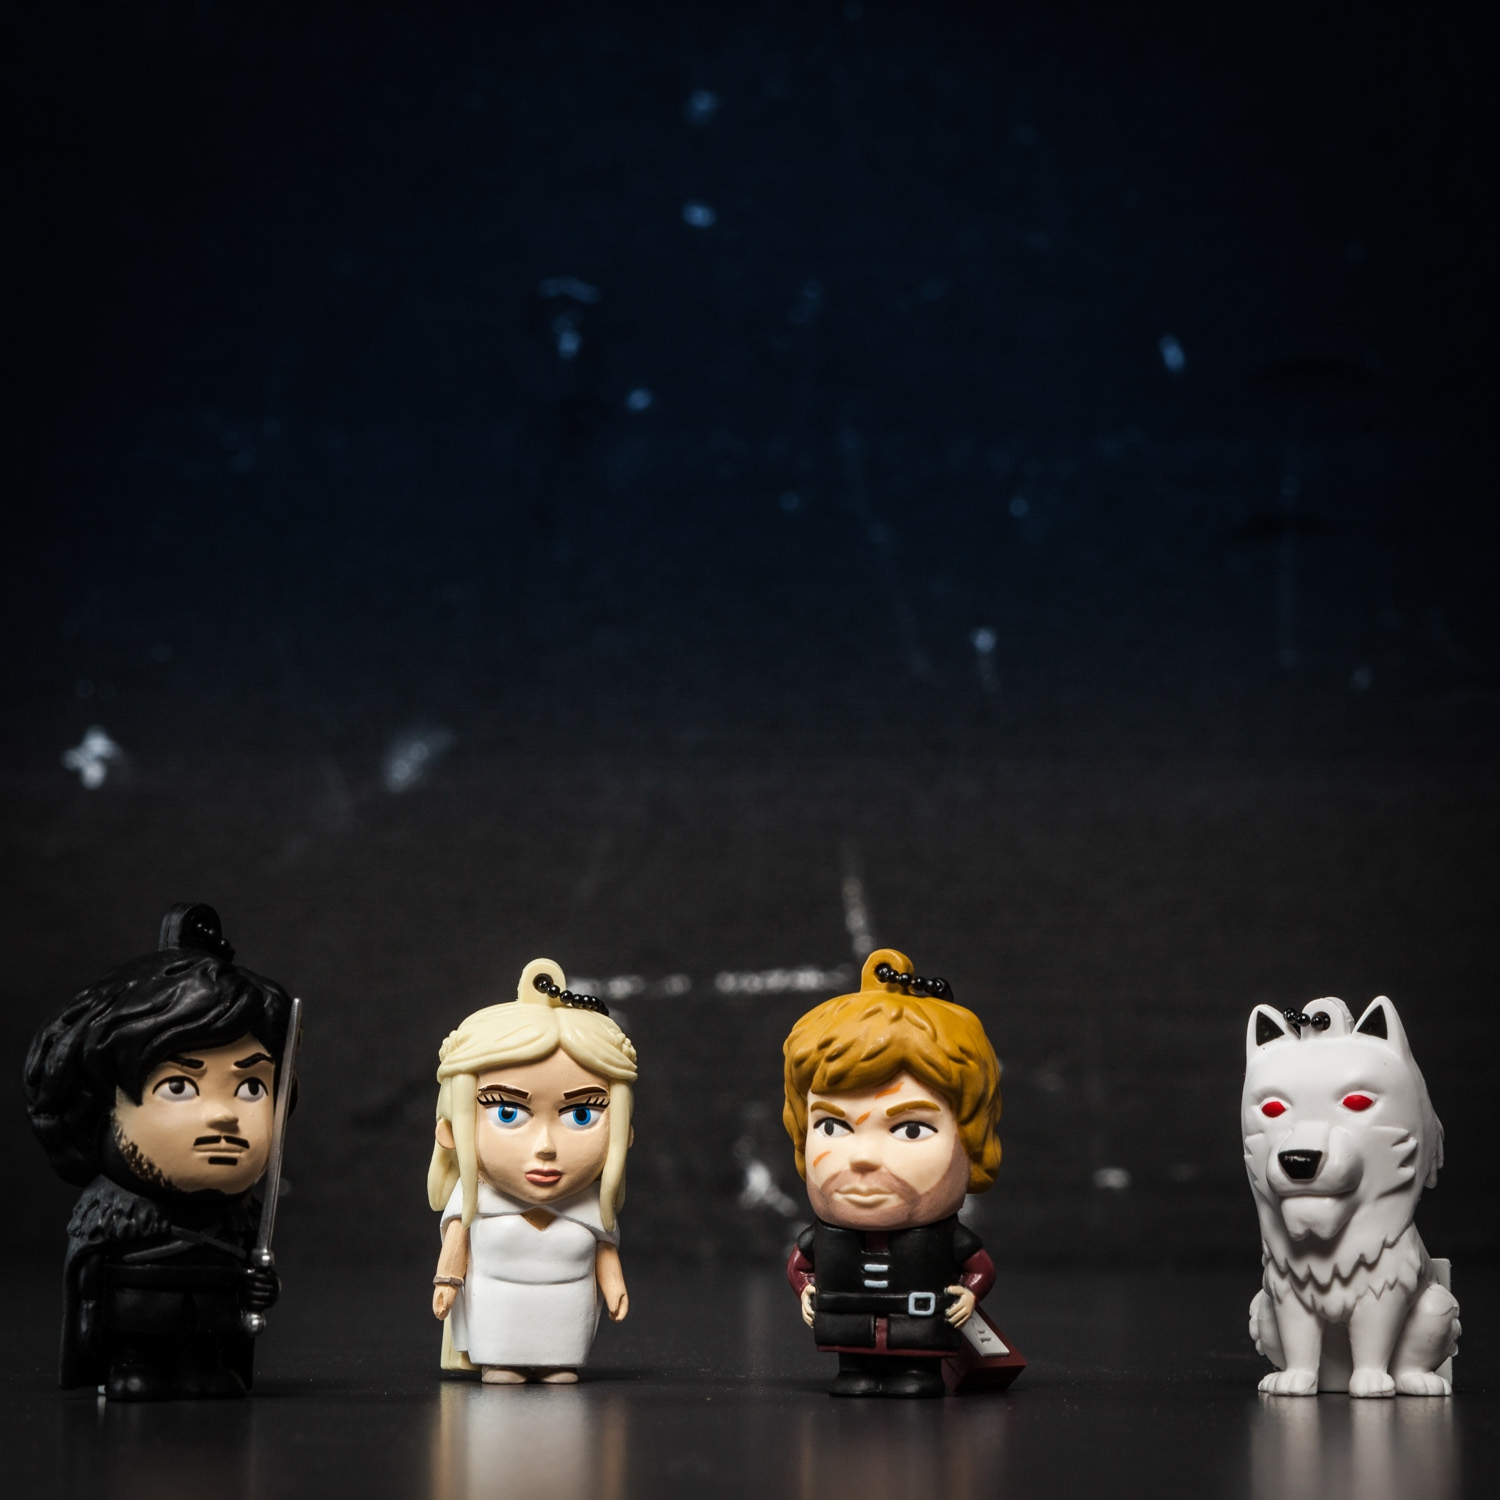 Game Of Thrones USB Sticks Jon Snow